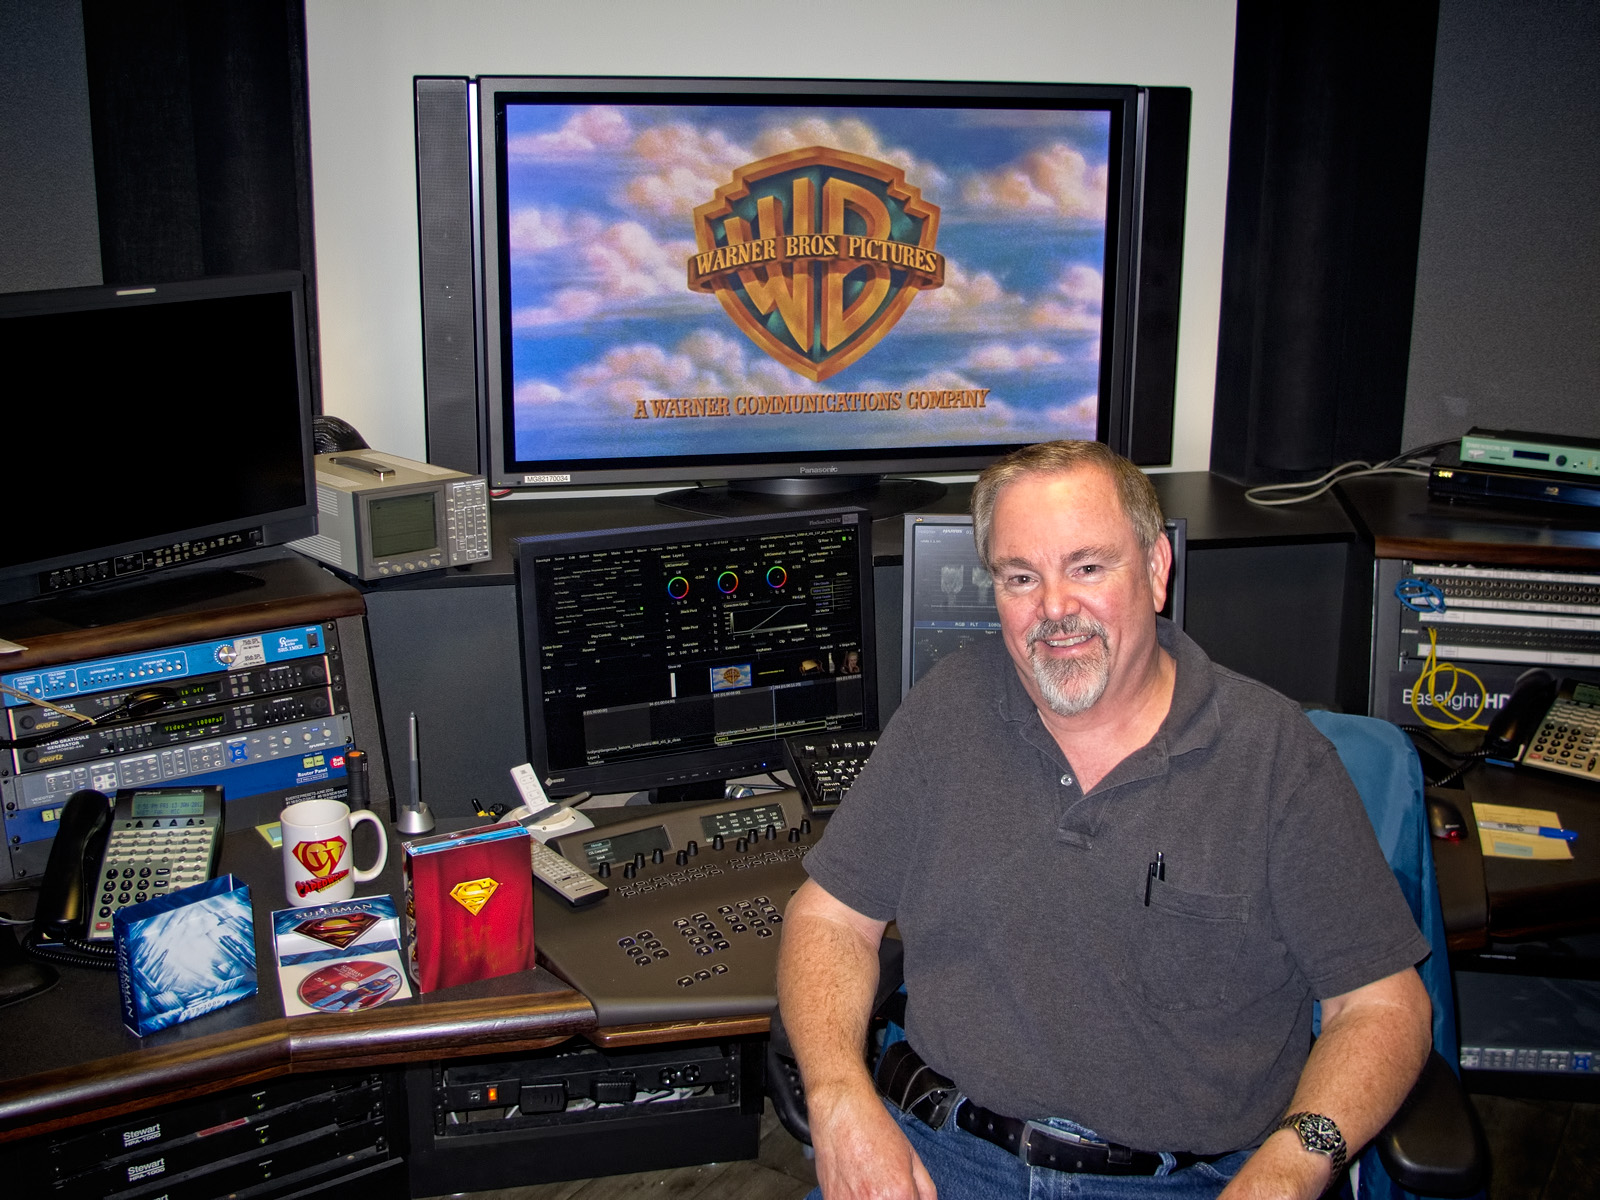 Senior Mastering Colorist Pat Miller at his suite at Warner Bros. Motion Picture Imaging on January 13, 2012. Photo by Jim Bowers.